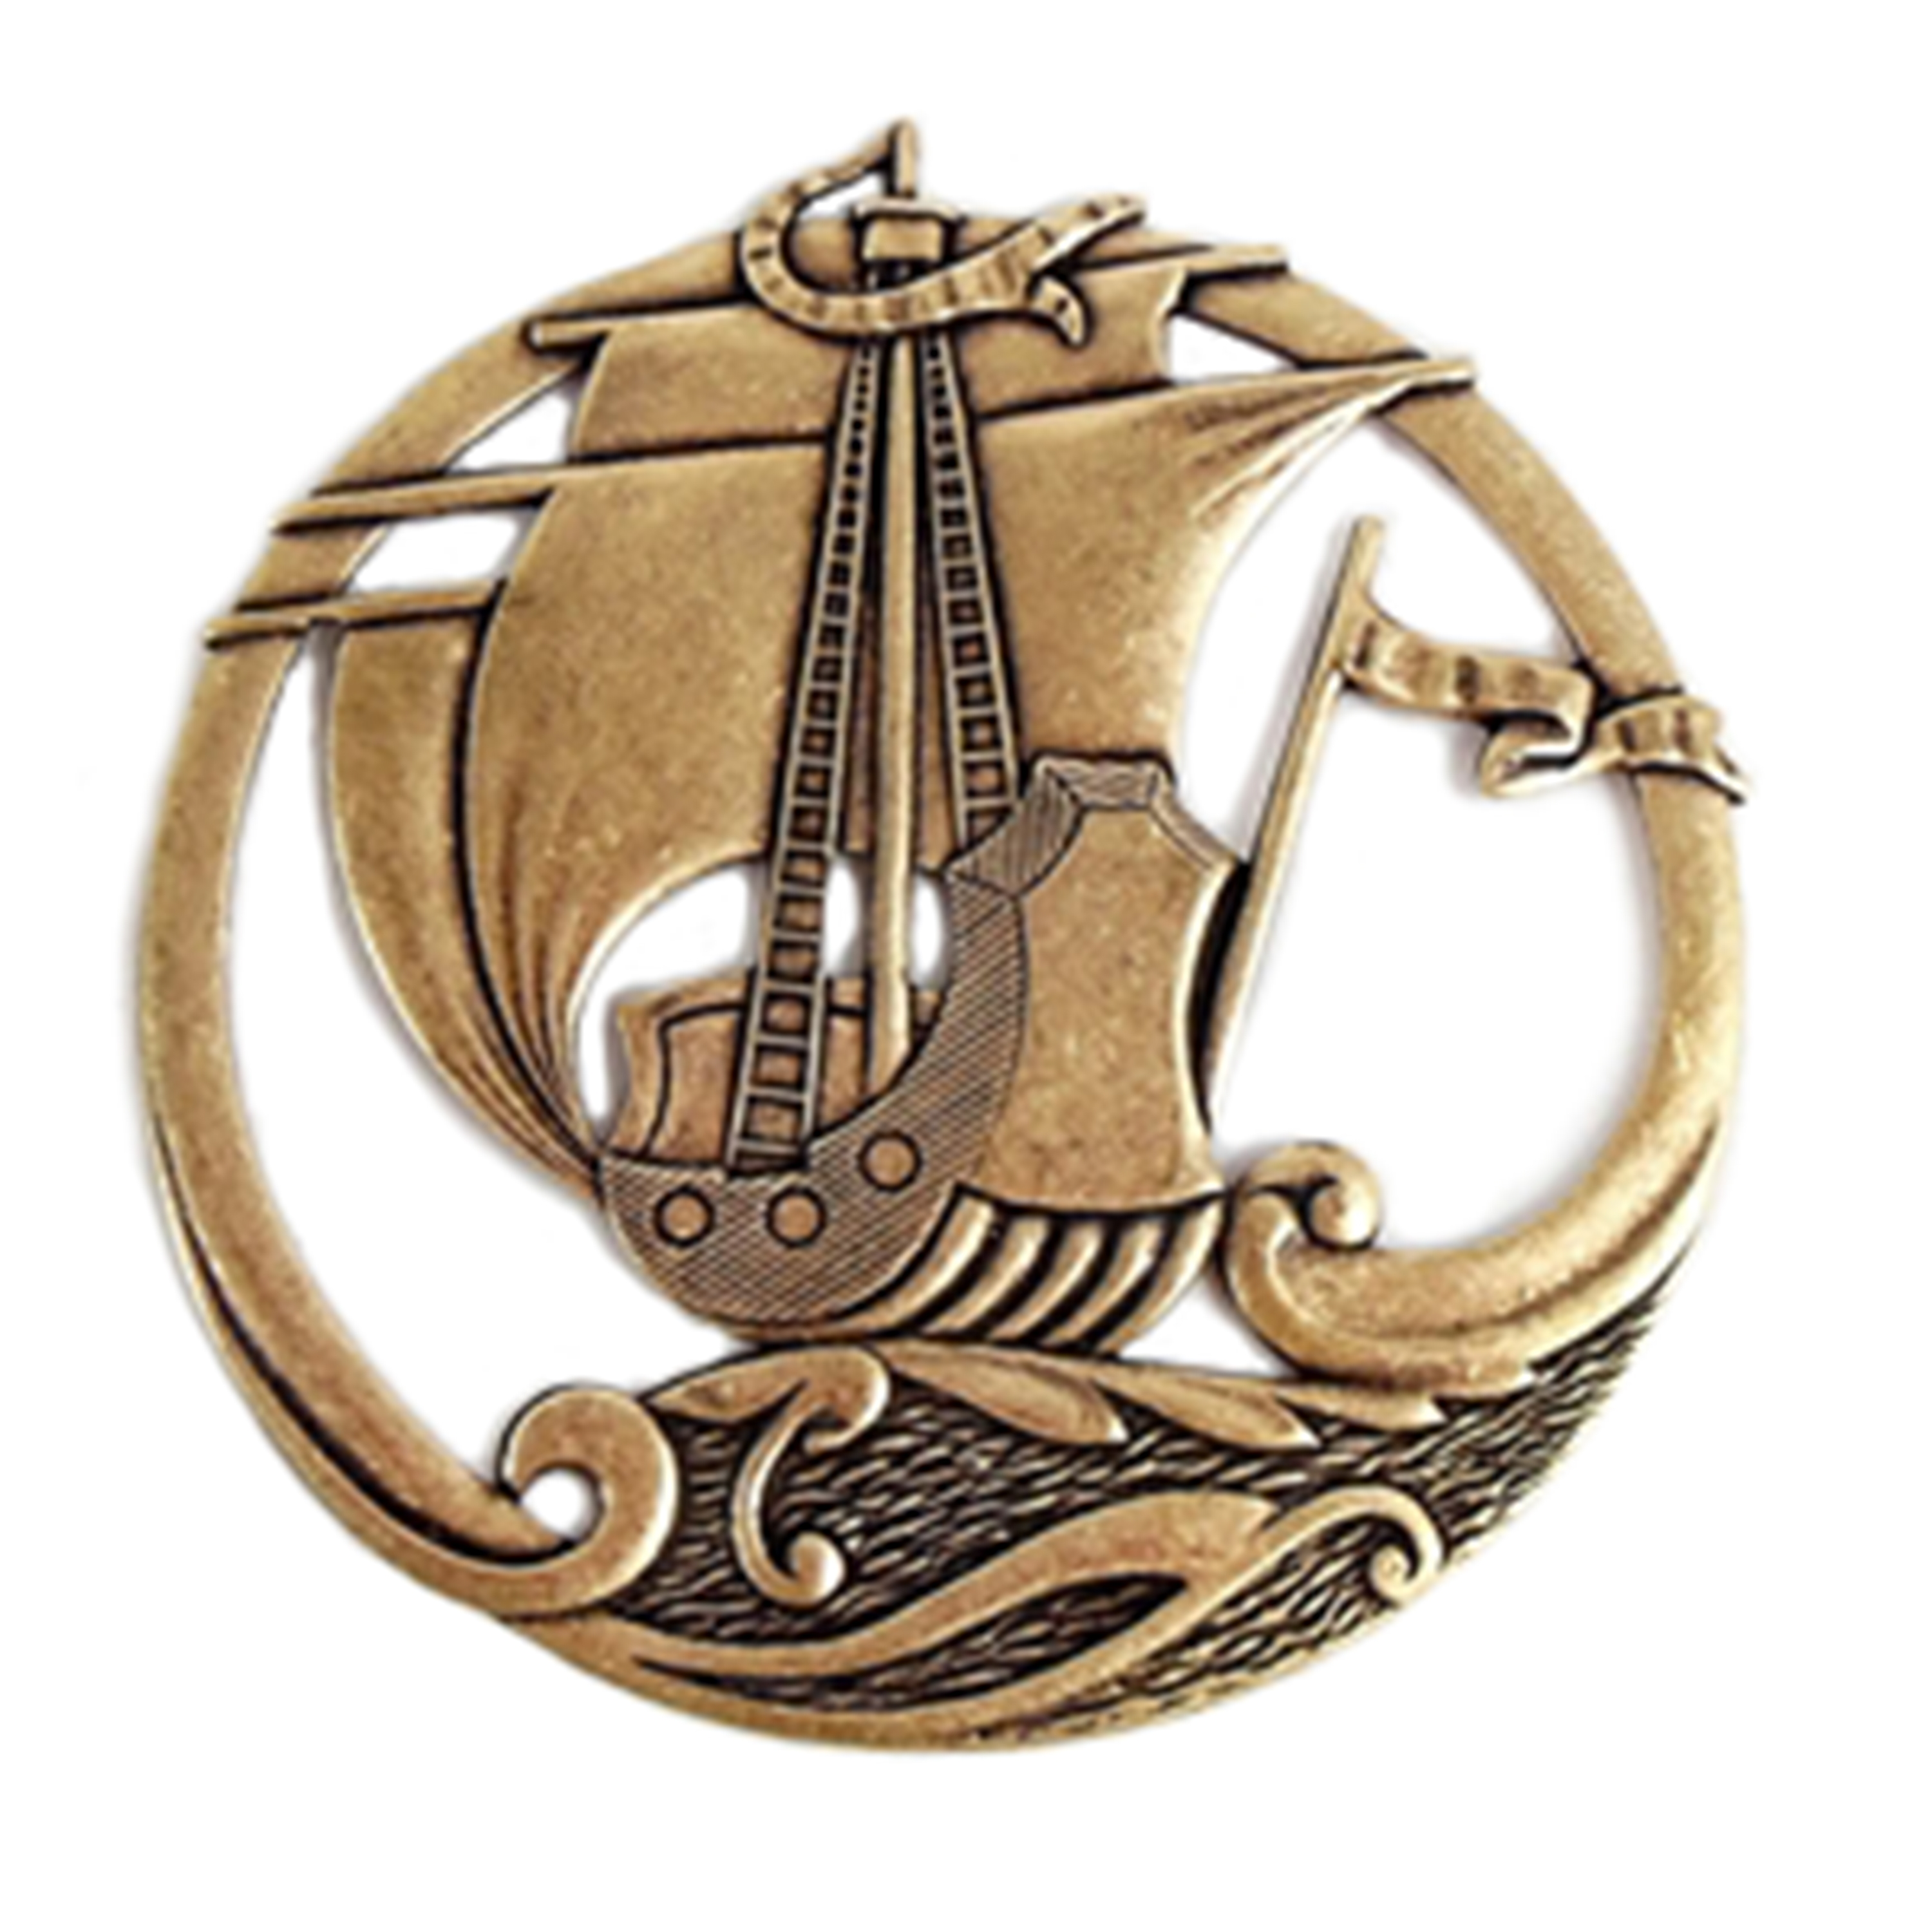 pirate ships, ship stampings, brass ox, 0758, nautical jewelry, beach jewelry, vintage jewelry supplies, brass ships, antique brass, brass boats, boat jewelry, pirates, jewelry making supplies, US made, nickel free, Bsue Boutiques